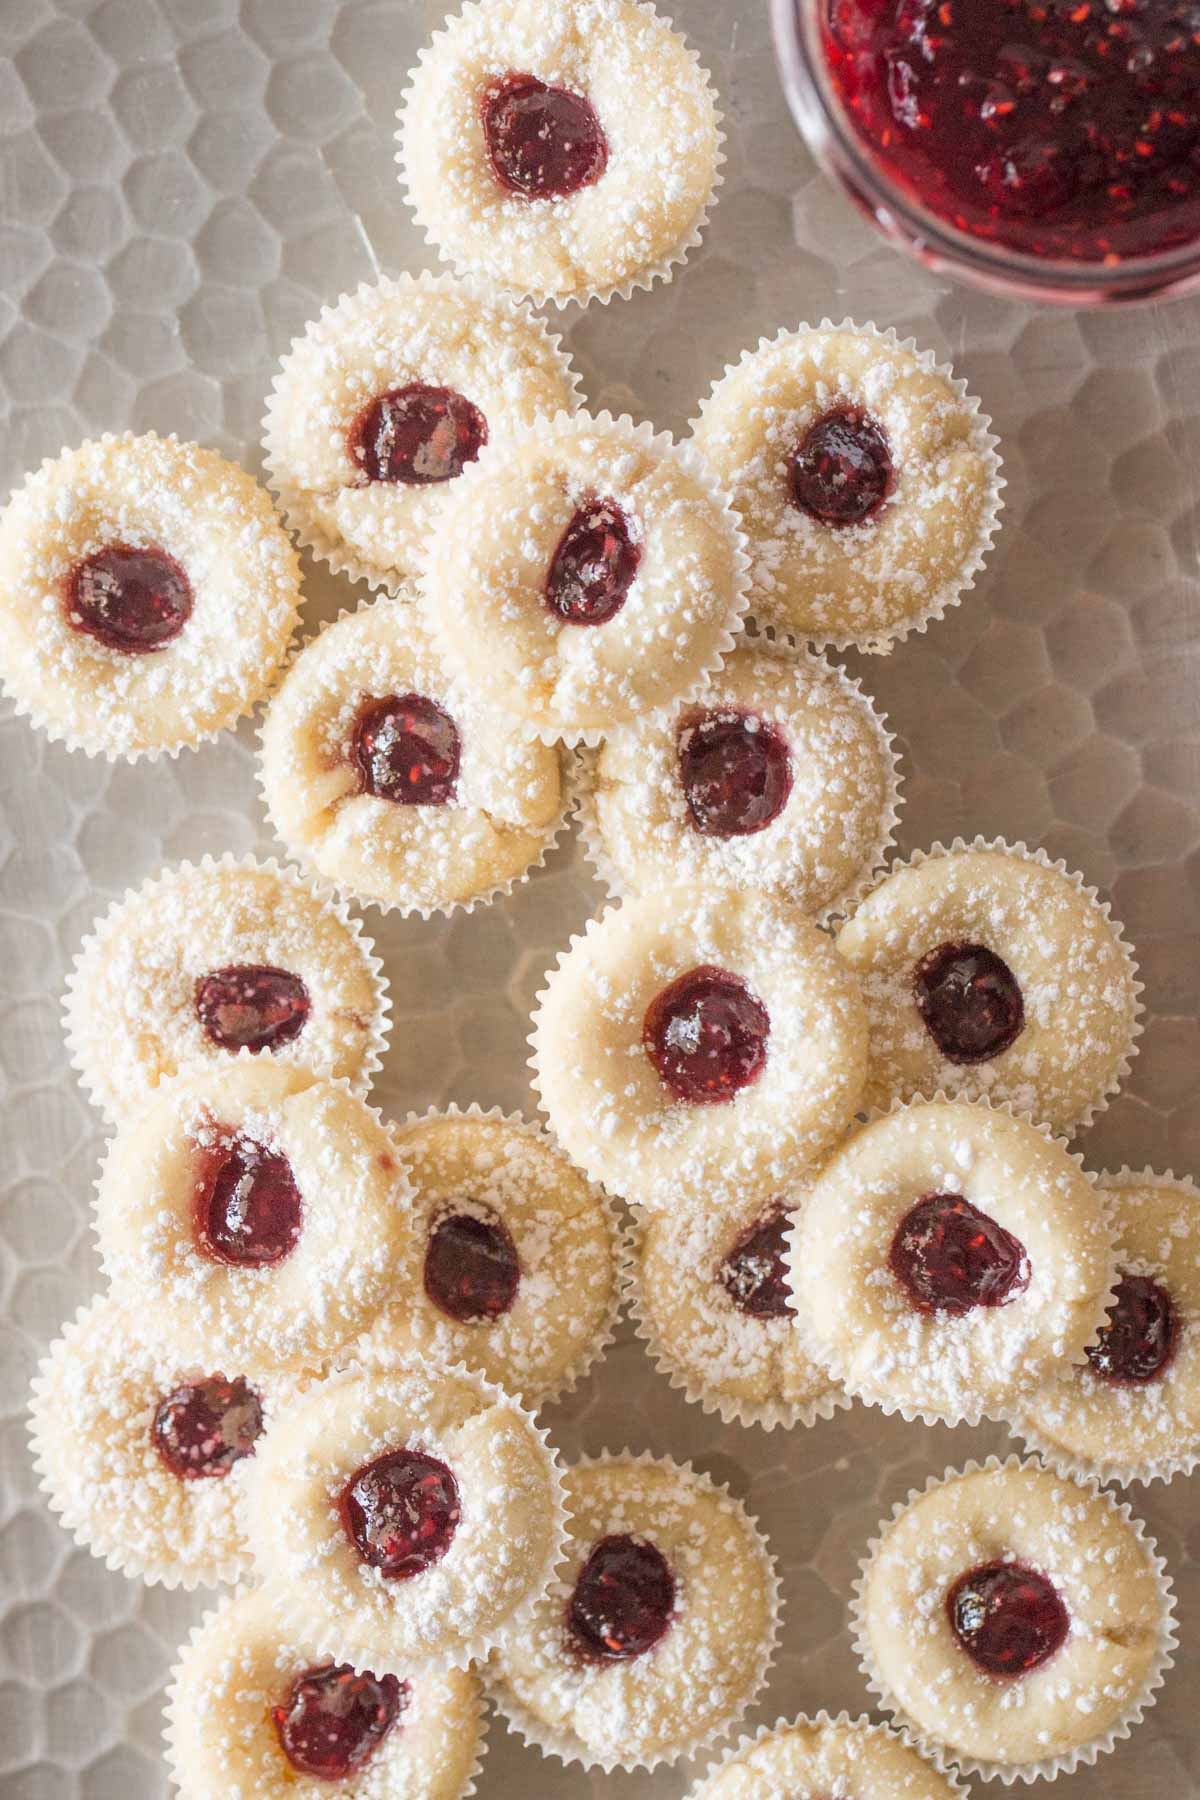 Overhead view of Mini Raspberry Almond Tarts with powdered sugar on a silver tray.